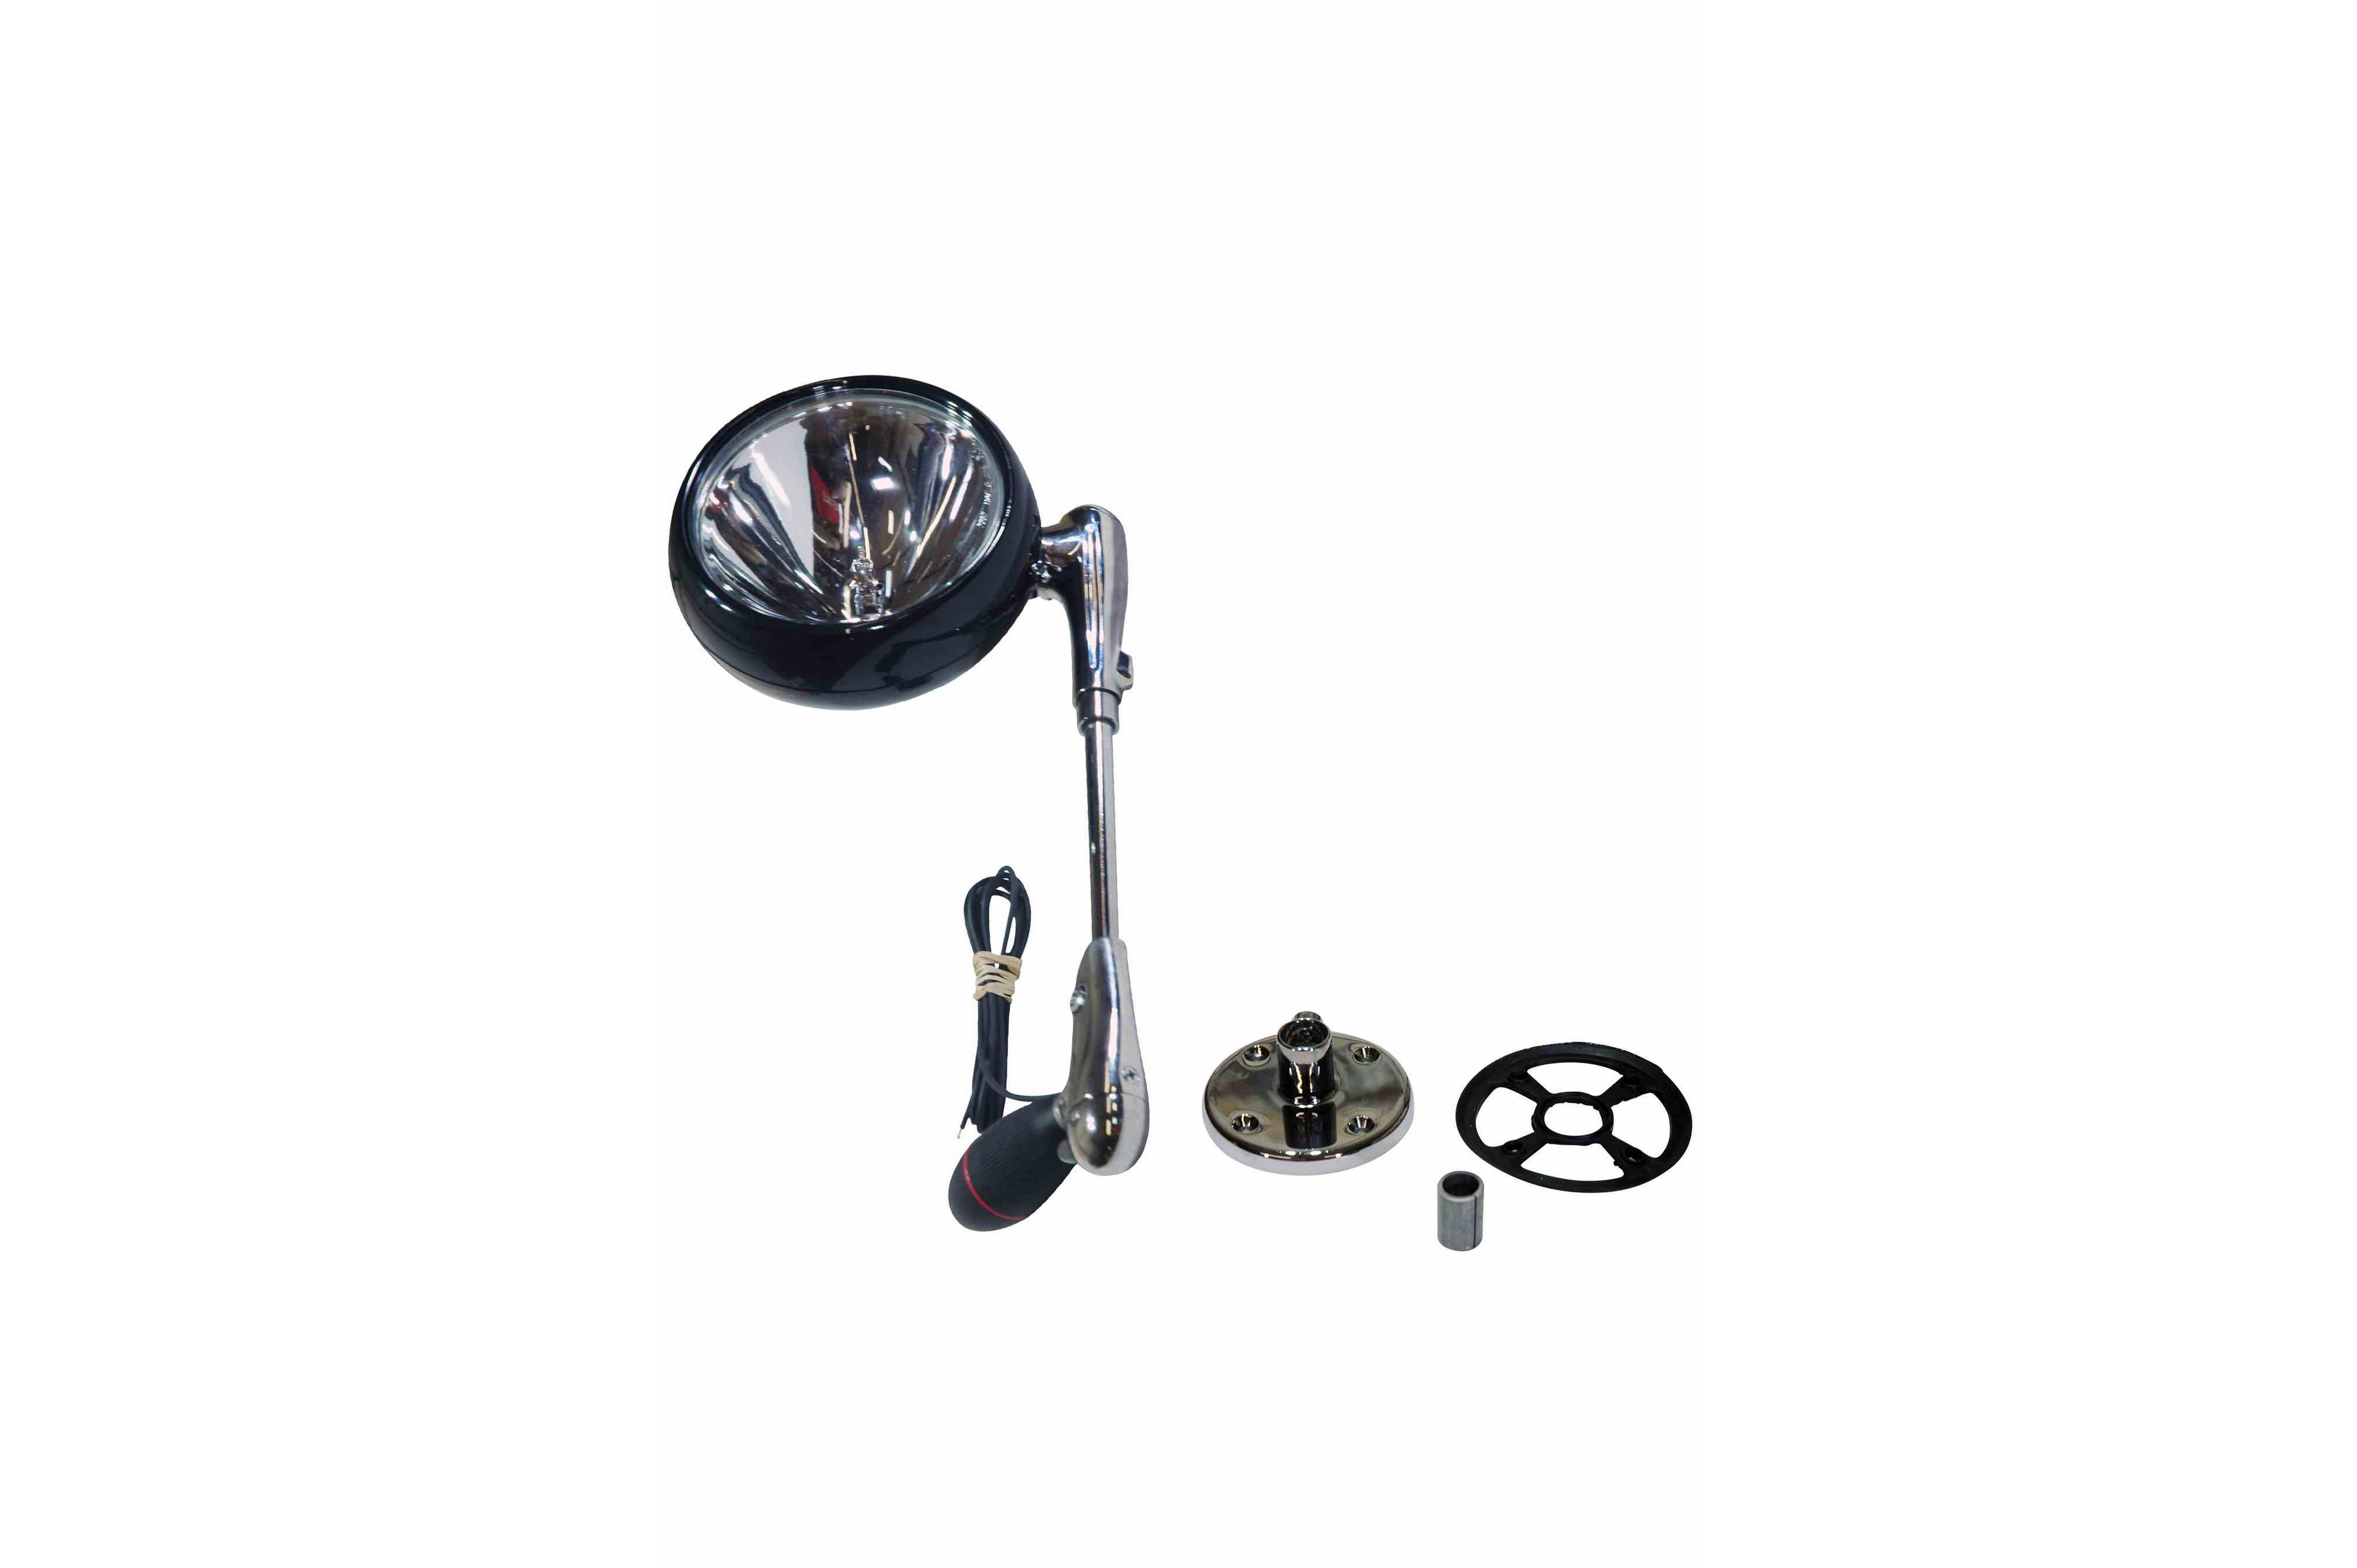 Roof Mount Light Rfm 7 24 24 Volt Dc With 7 Inches Post